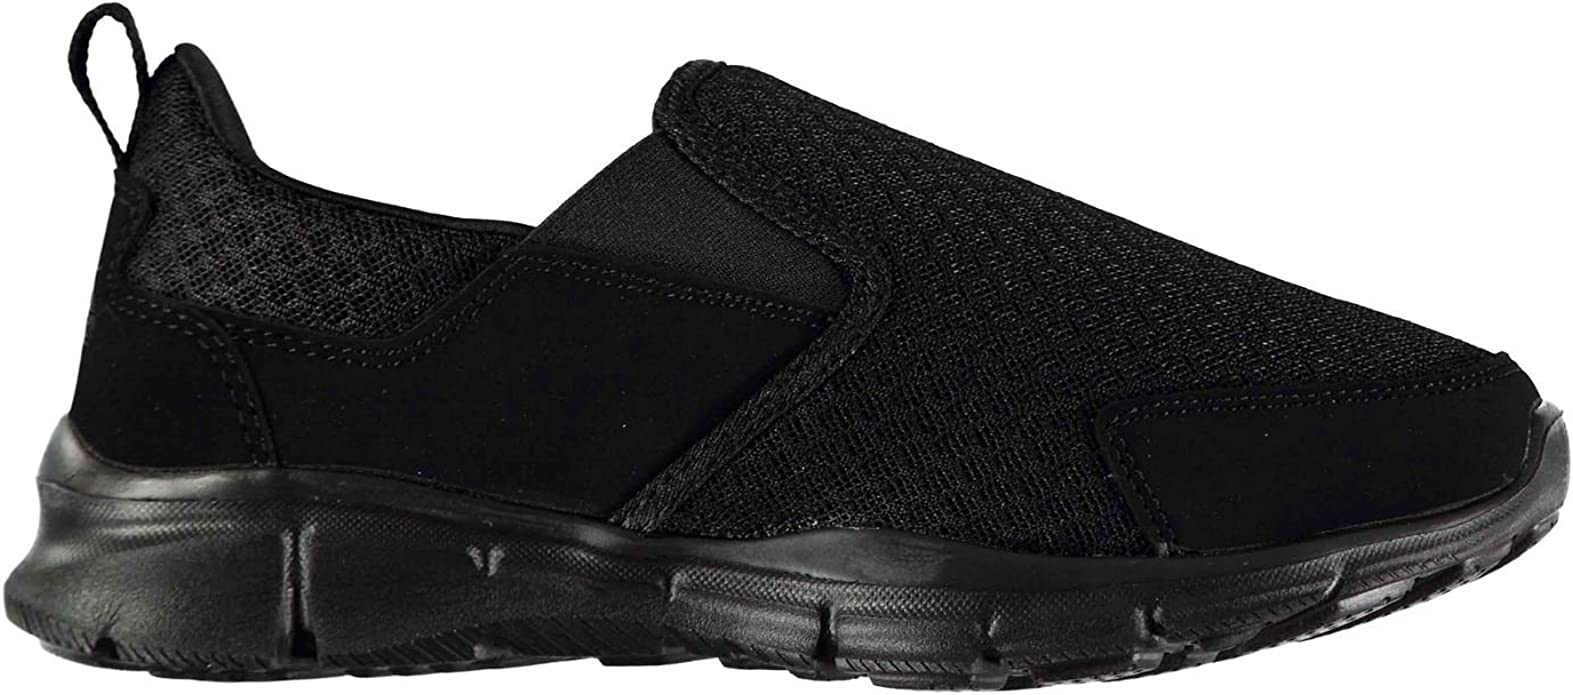 slip on trainers for boys